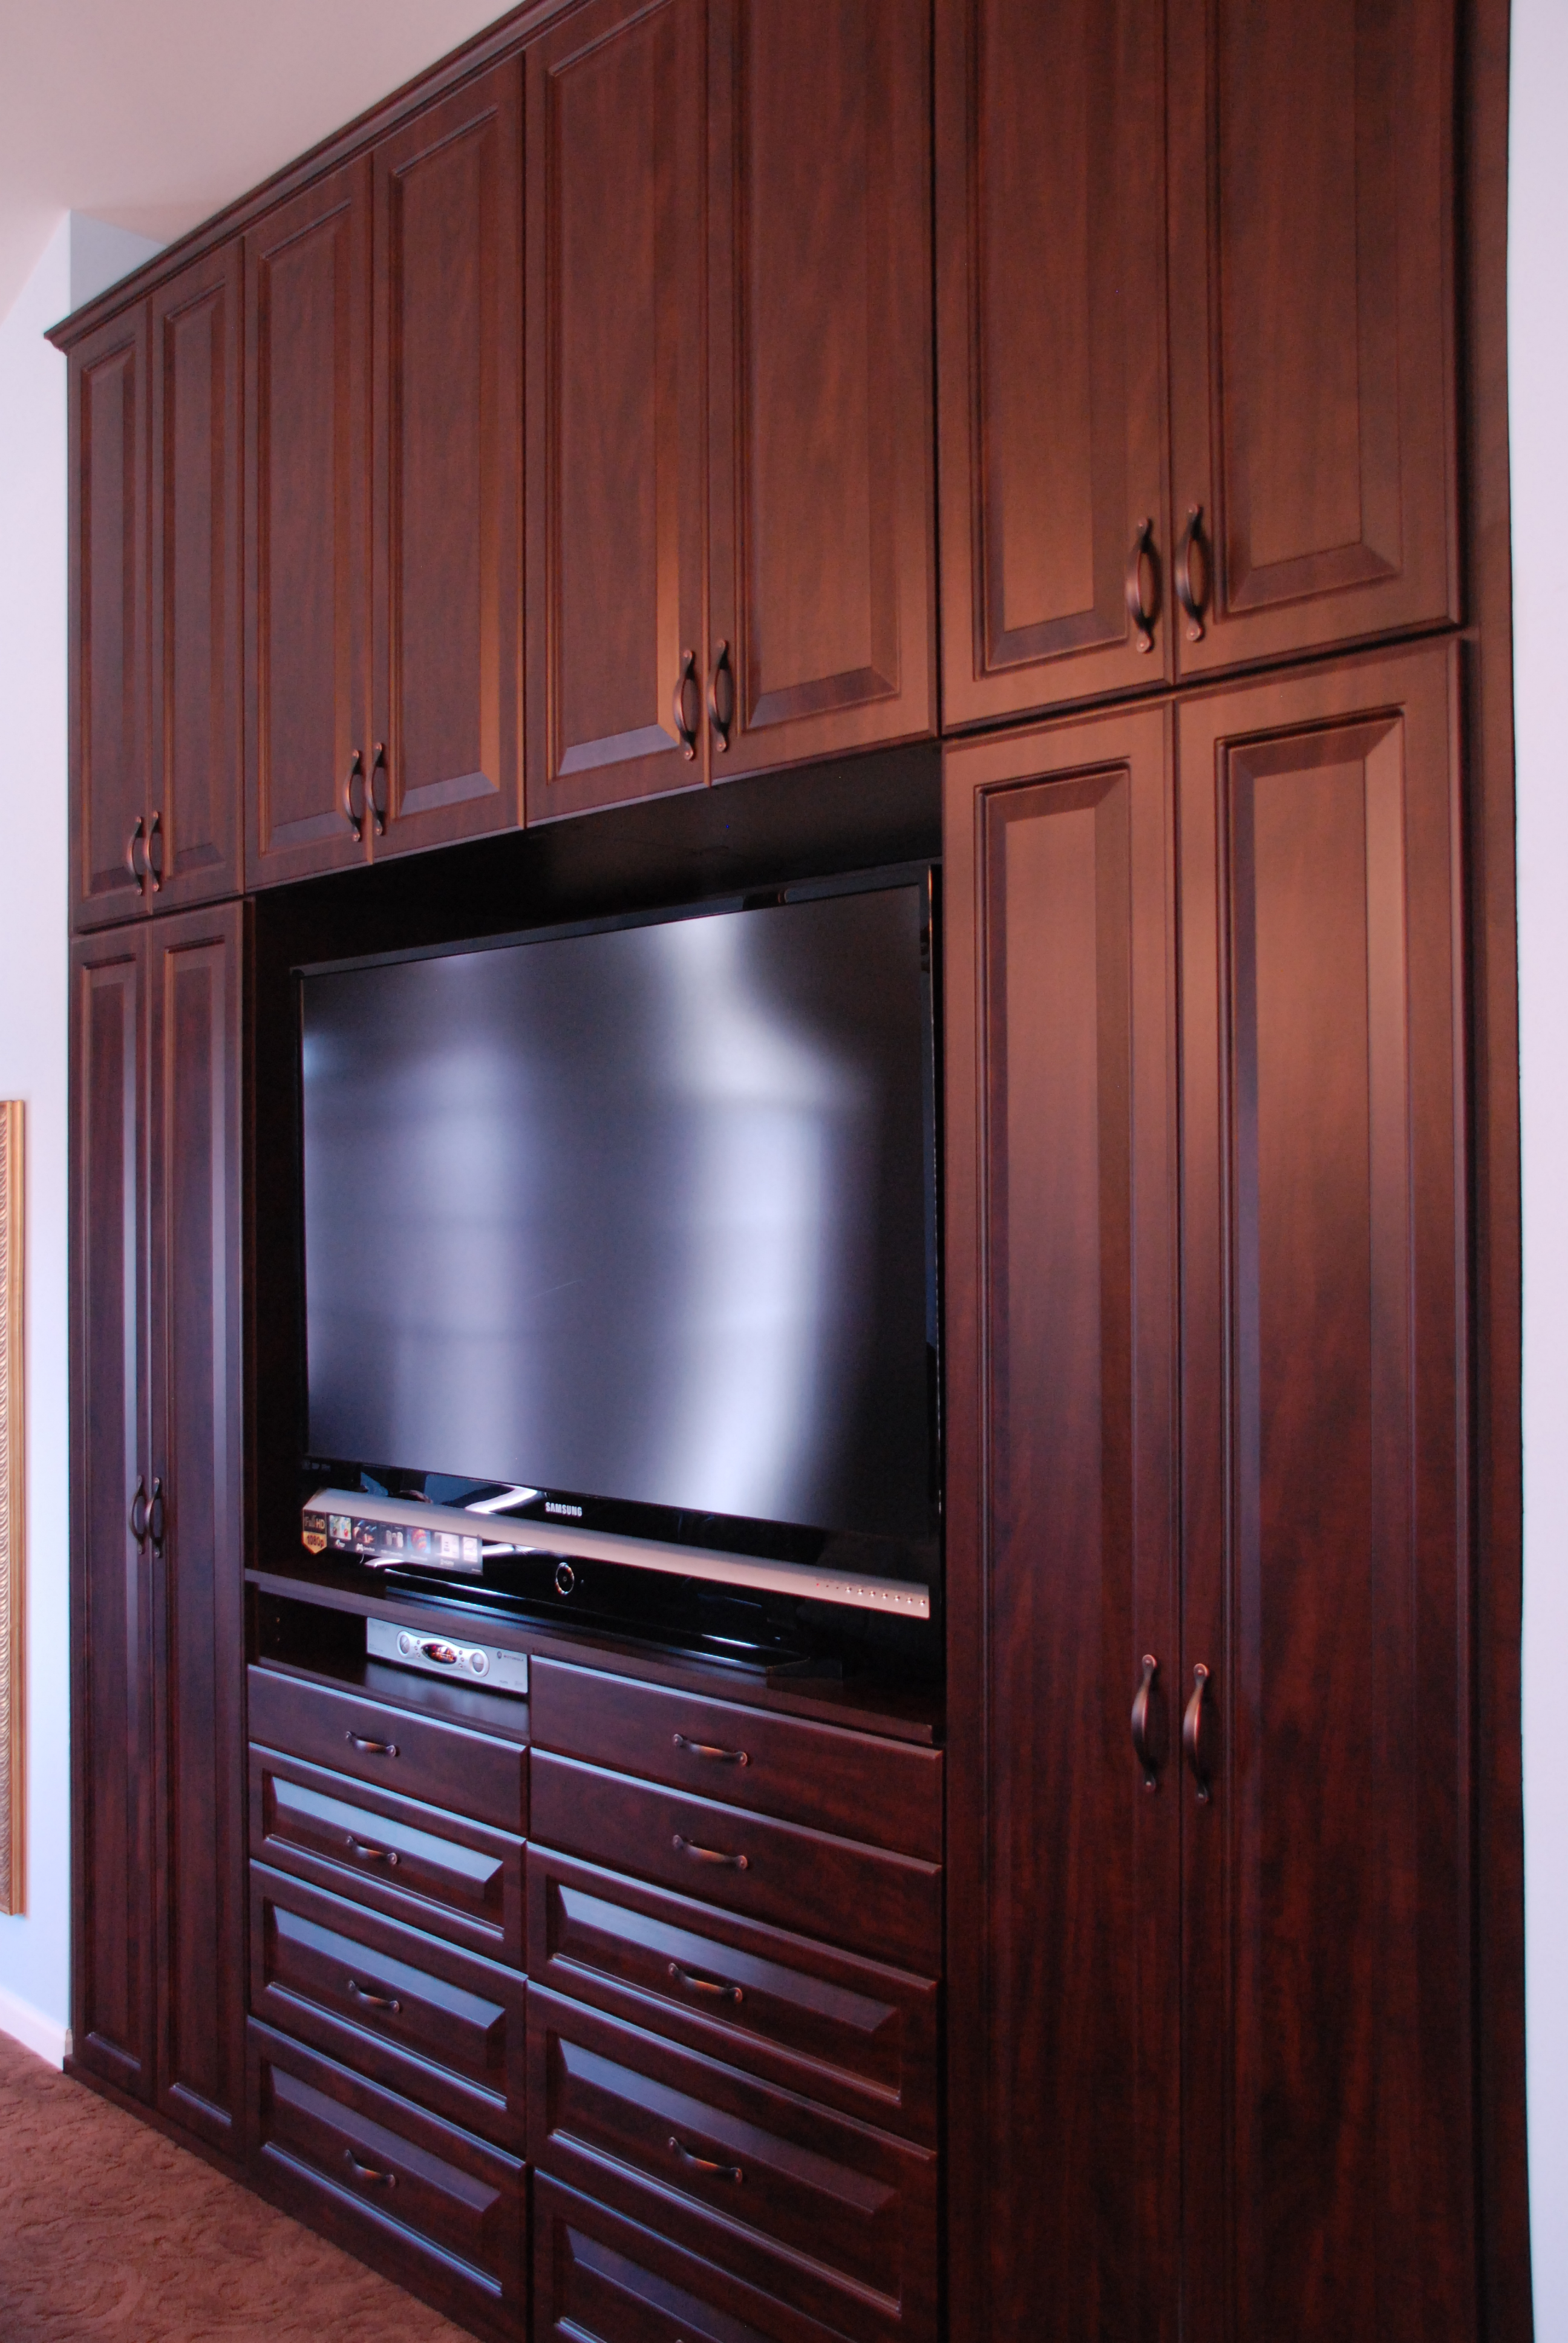 Everything closets niles il 60714 angies list Master bedroom tv wall unit